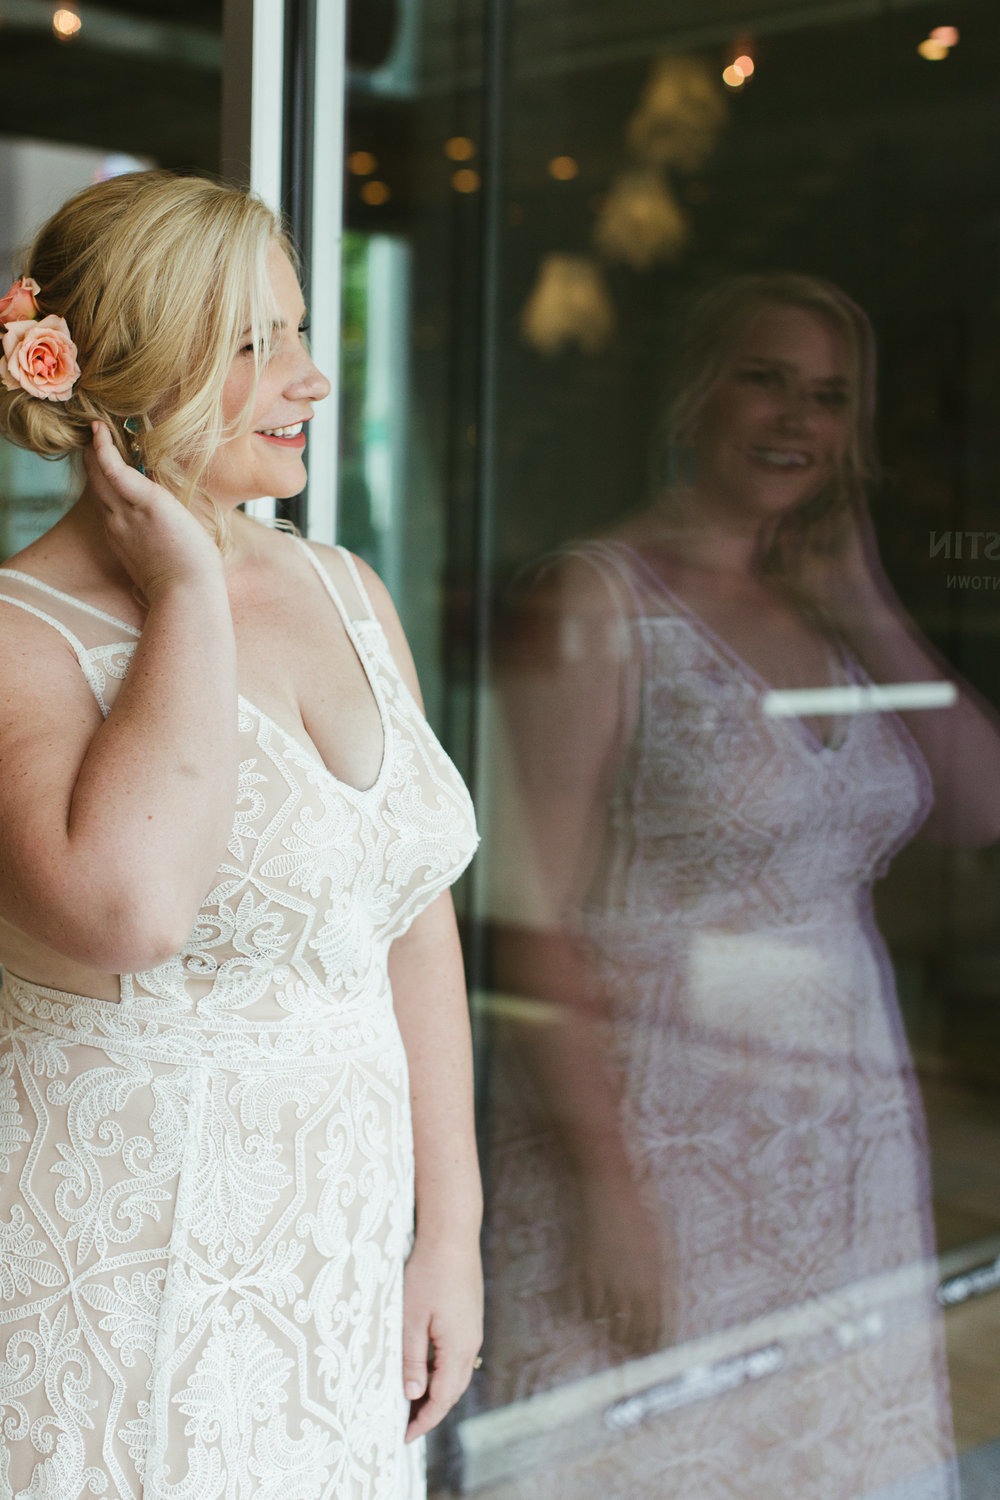 Paige-Newton-Intimate-Wedding-Photographer-Contigo-Wedding-Austin-Texas0012.jpg